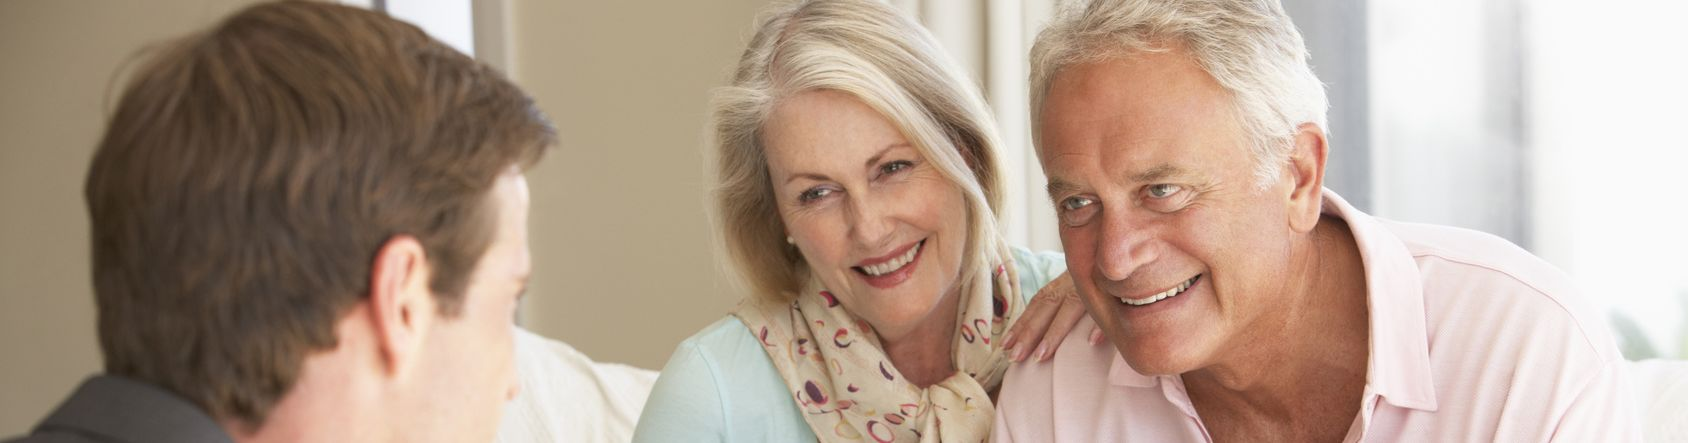 Free Dating Sites For Women Over 50